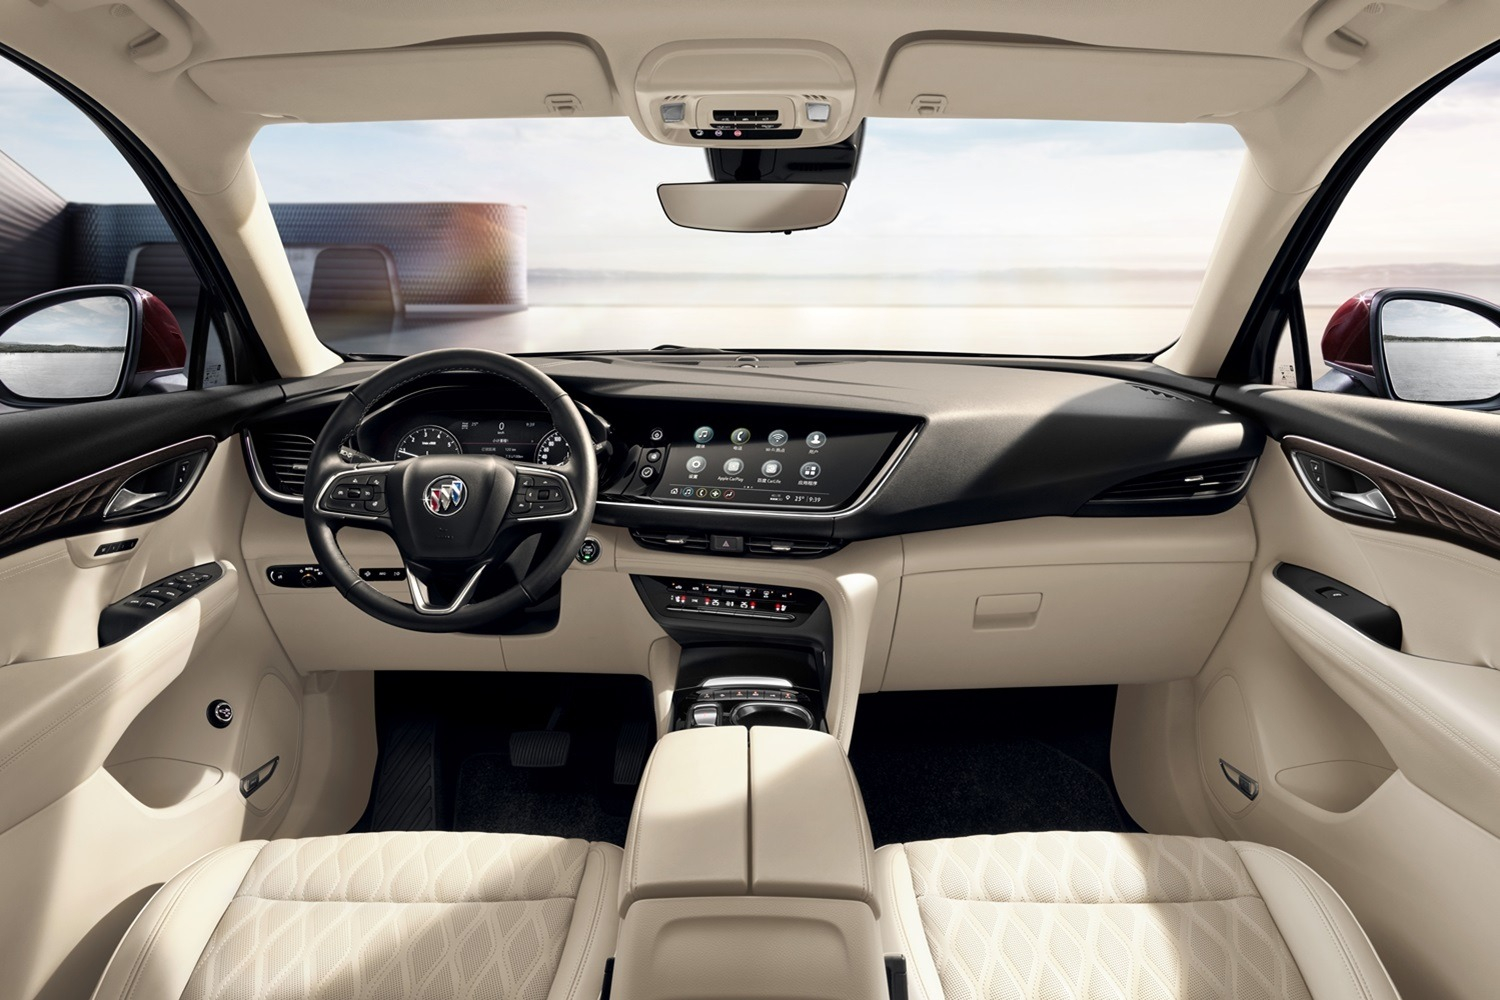 2021 Buick Envision Interior Revealed In Brand New Photos 2021 Buick Riviera Interior, History, Headlights